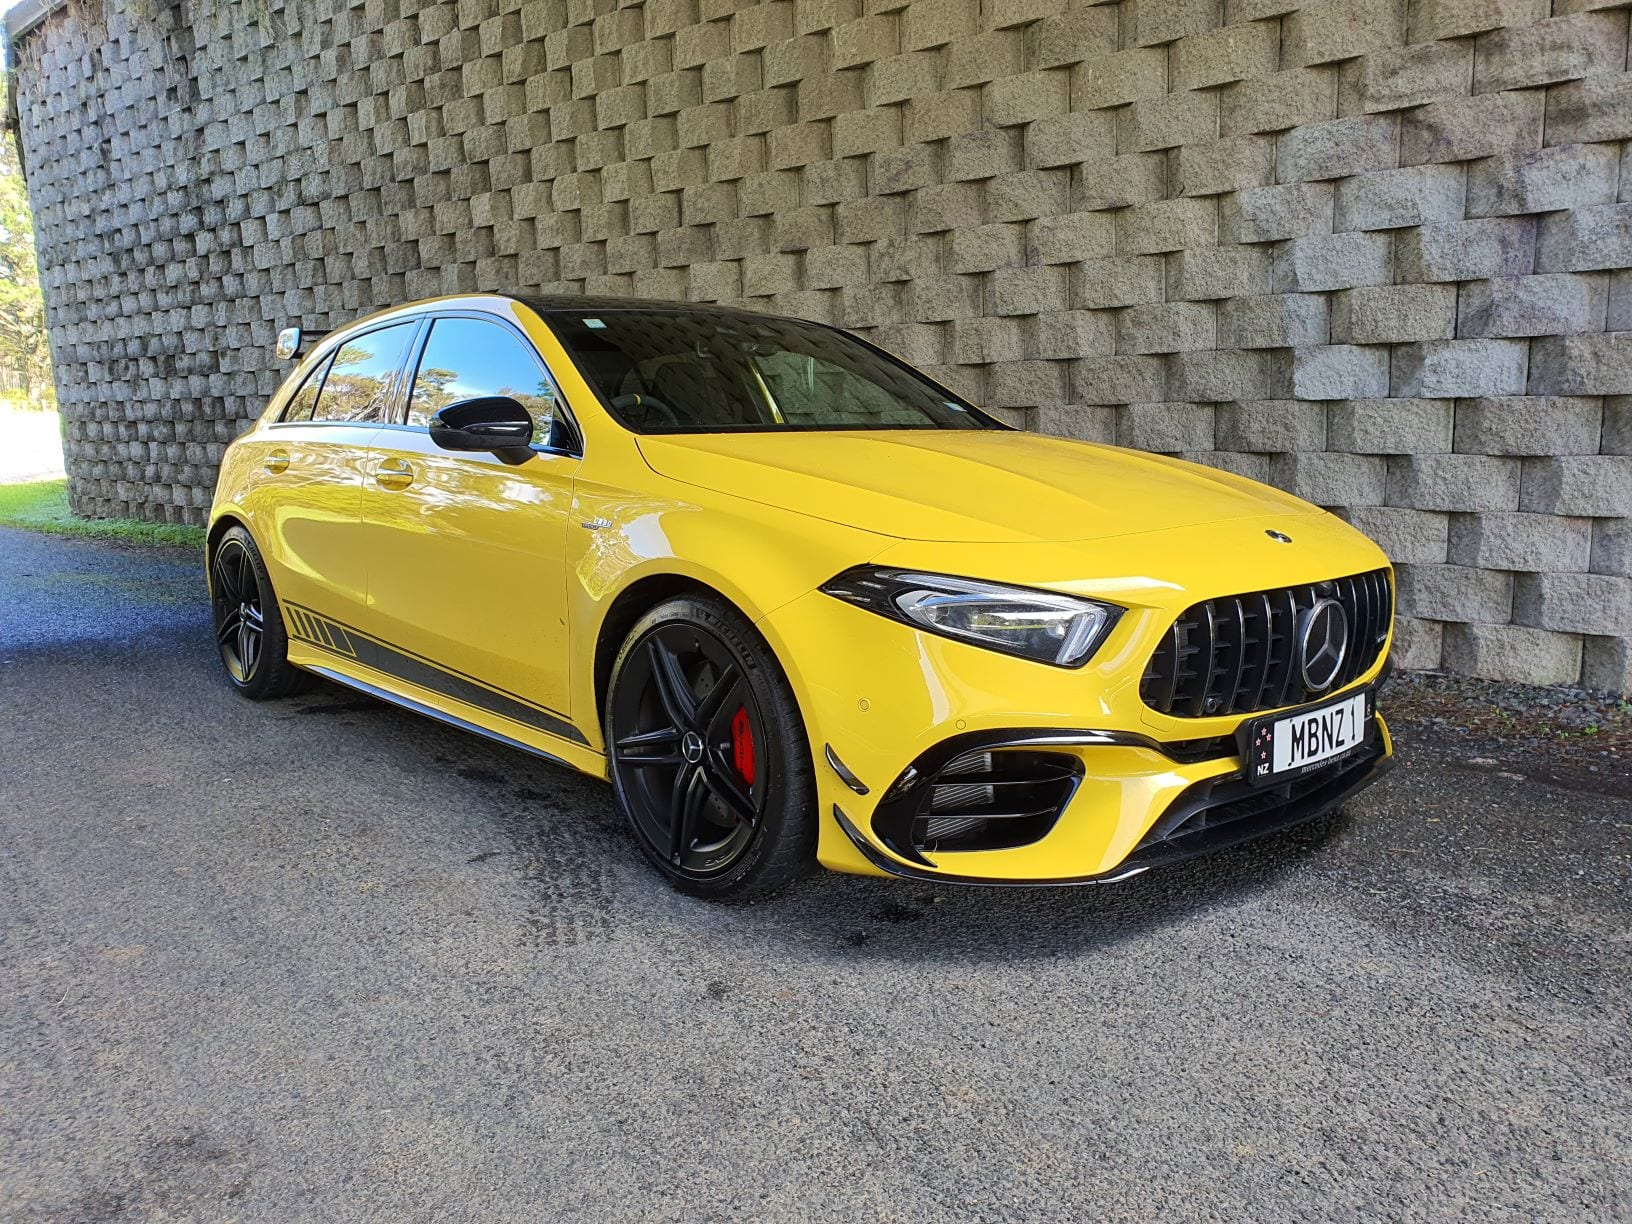 The bonkers Mercedes Benz A45 AMG S in yellow